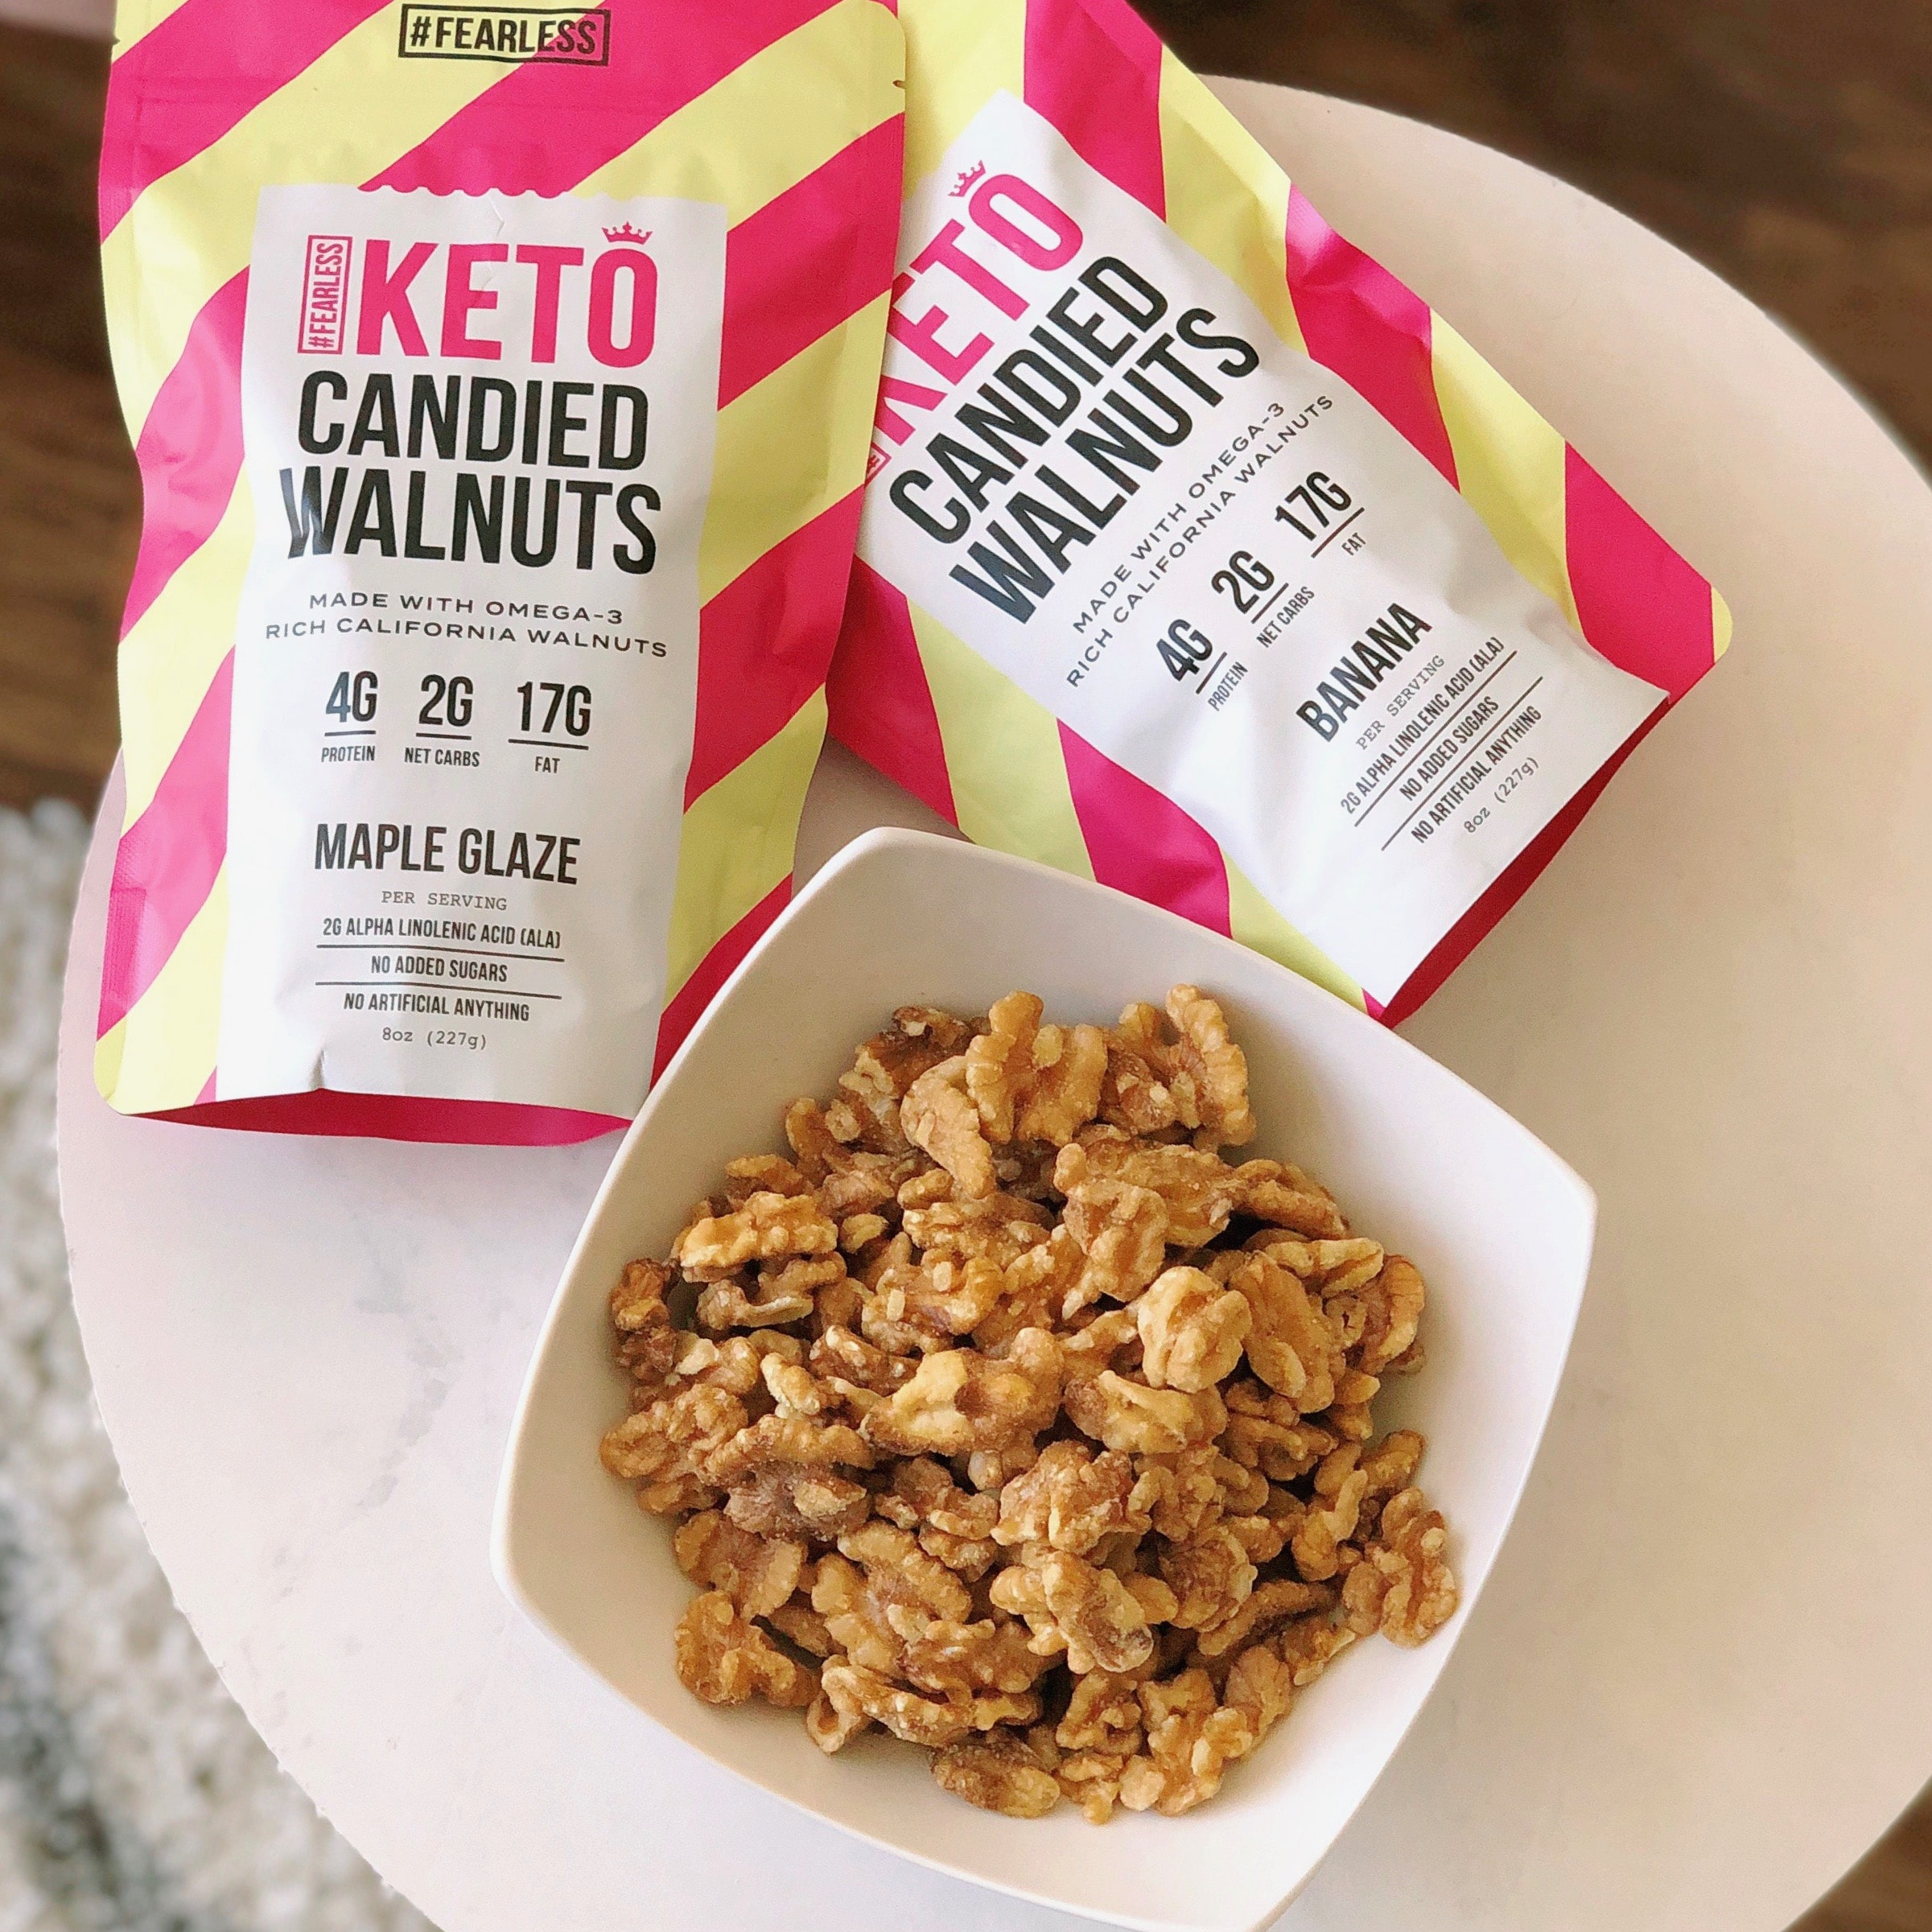 Fearless Keto Launches Keto-Friendly Candied Walnuts and Pancake & Muffin Mix